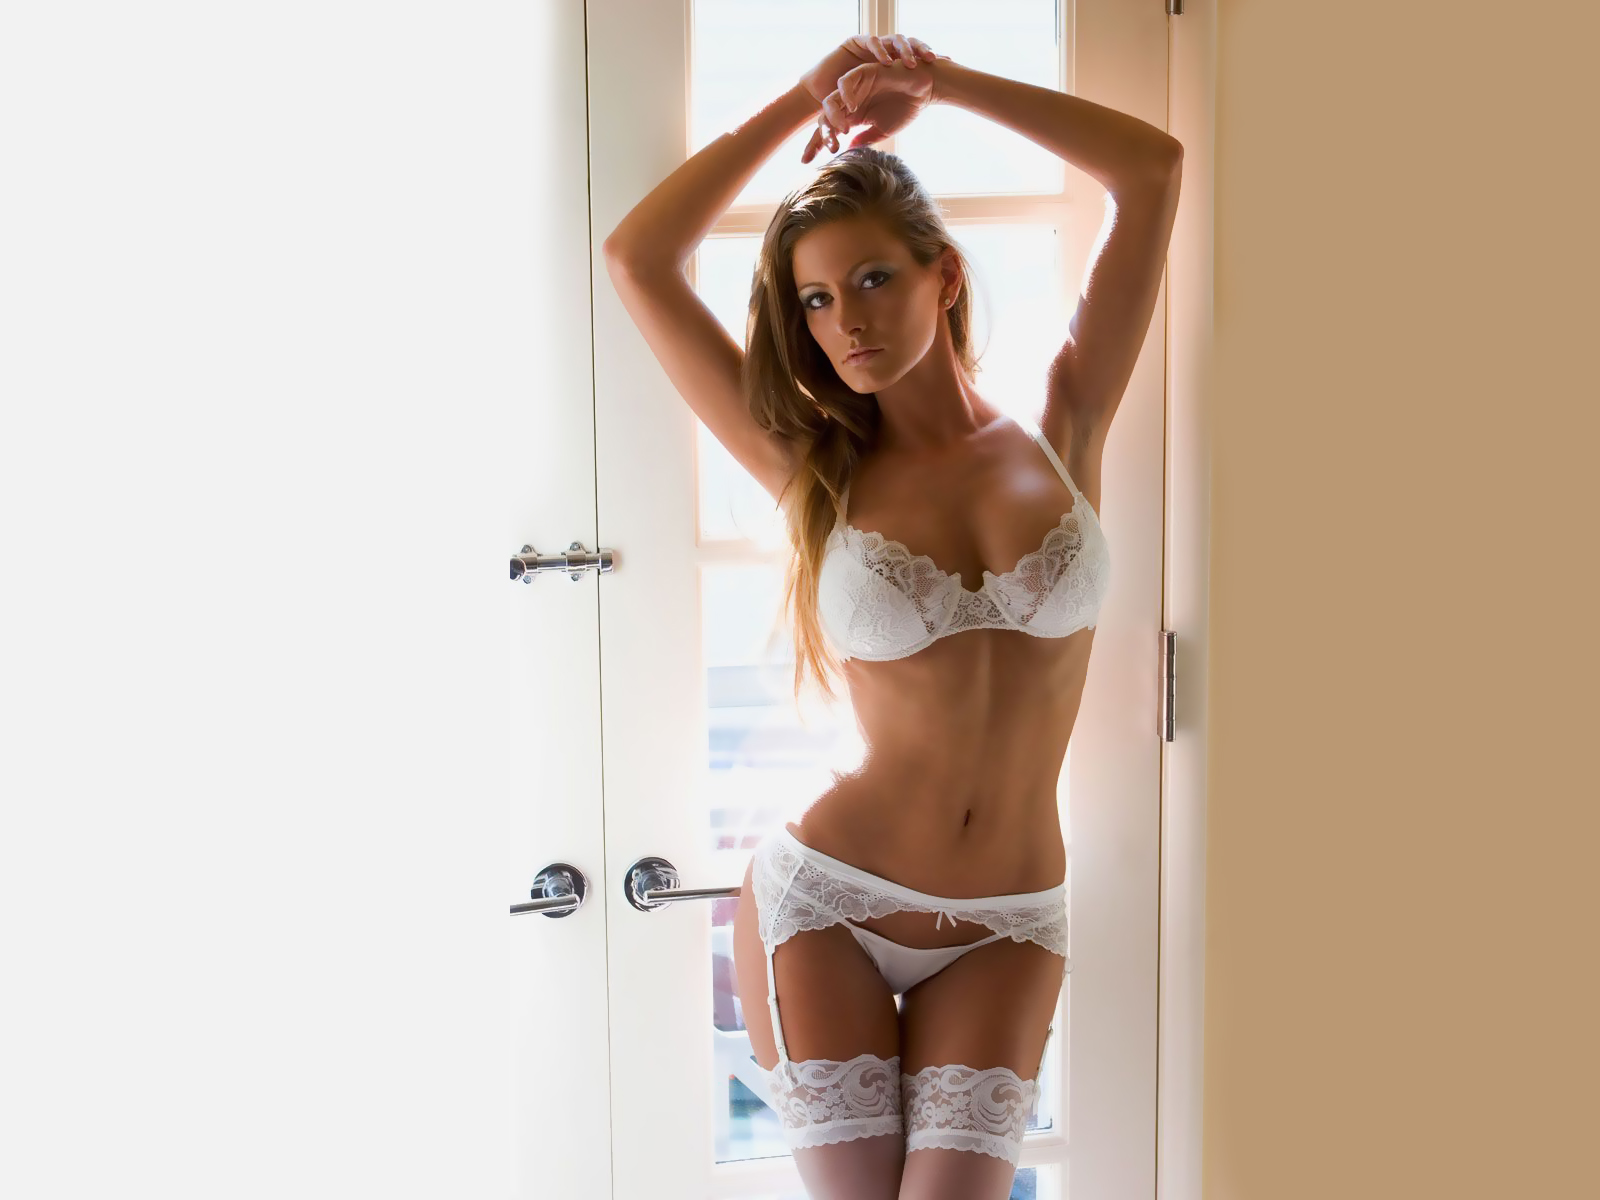 Hot Blonde in Sexy White Lingerie